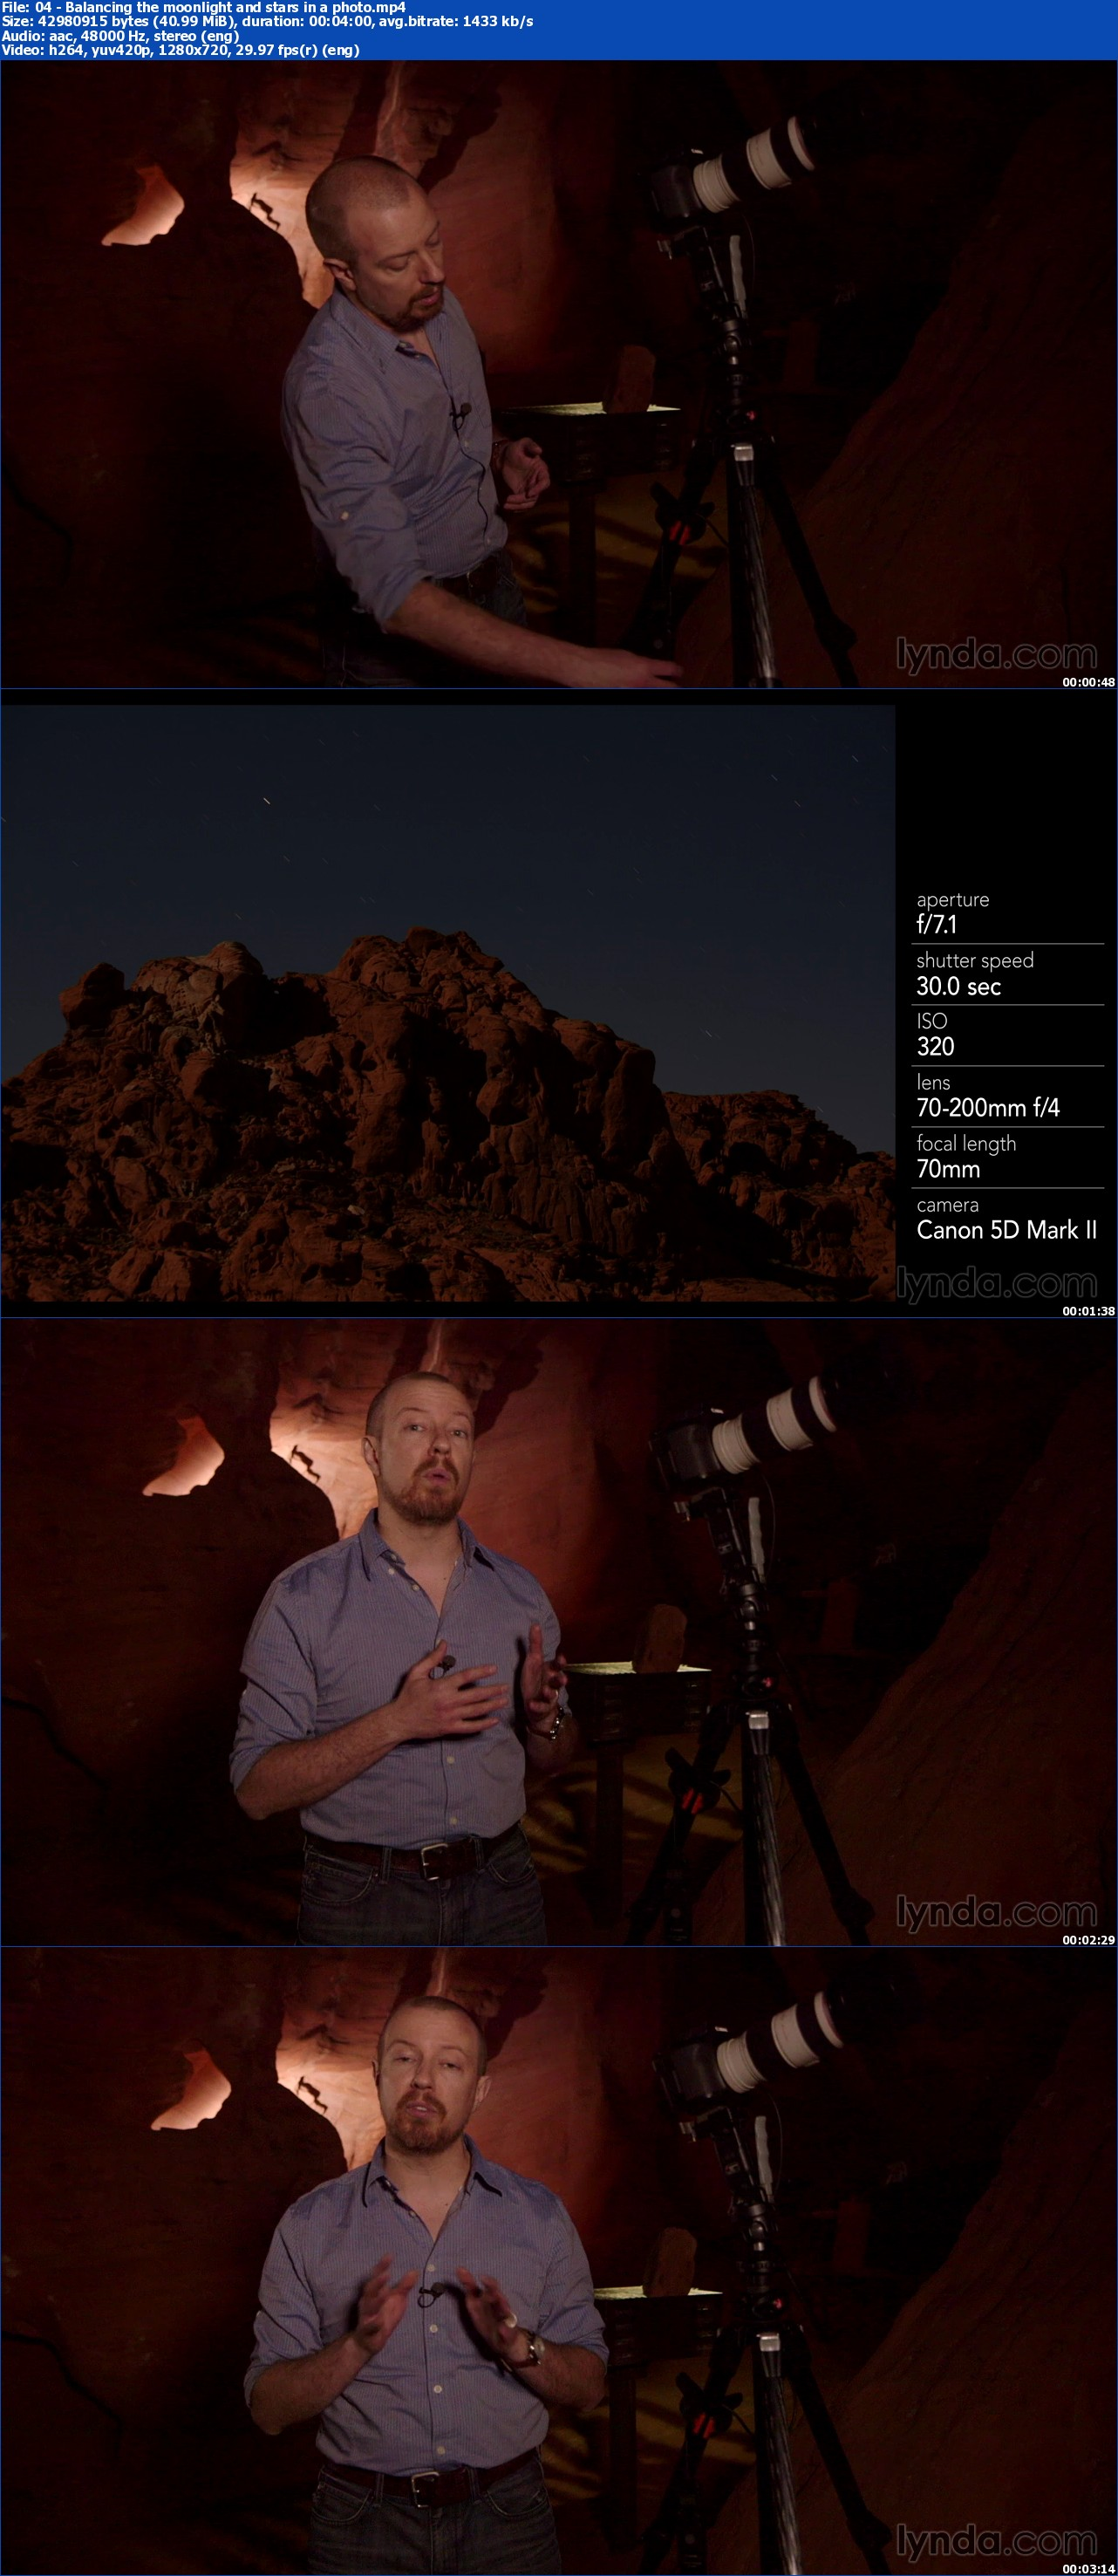 Lynda - Photography 101: Shooting in Low Light